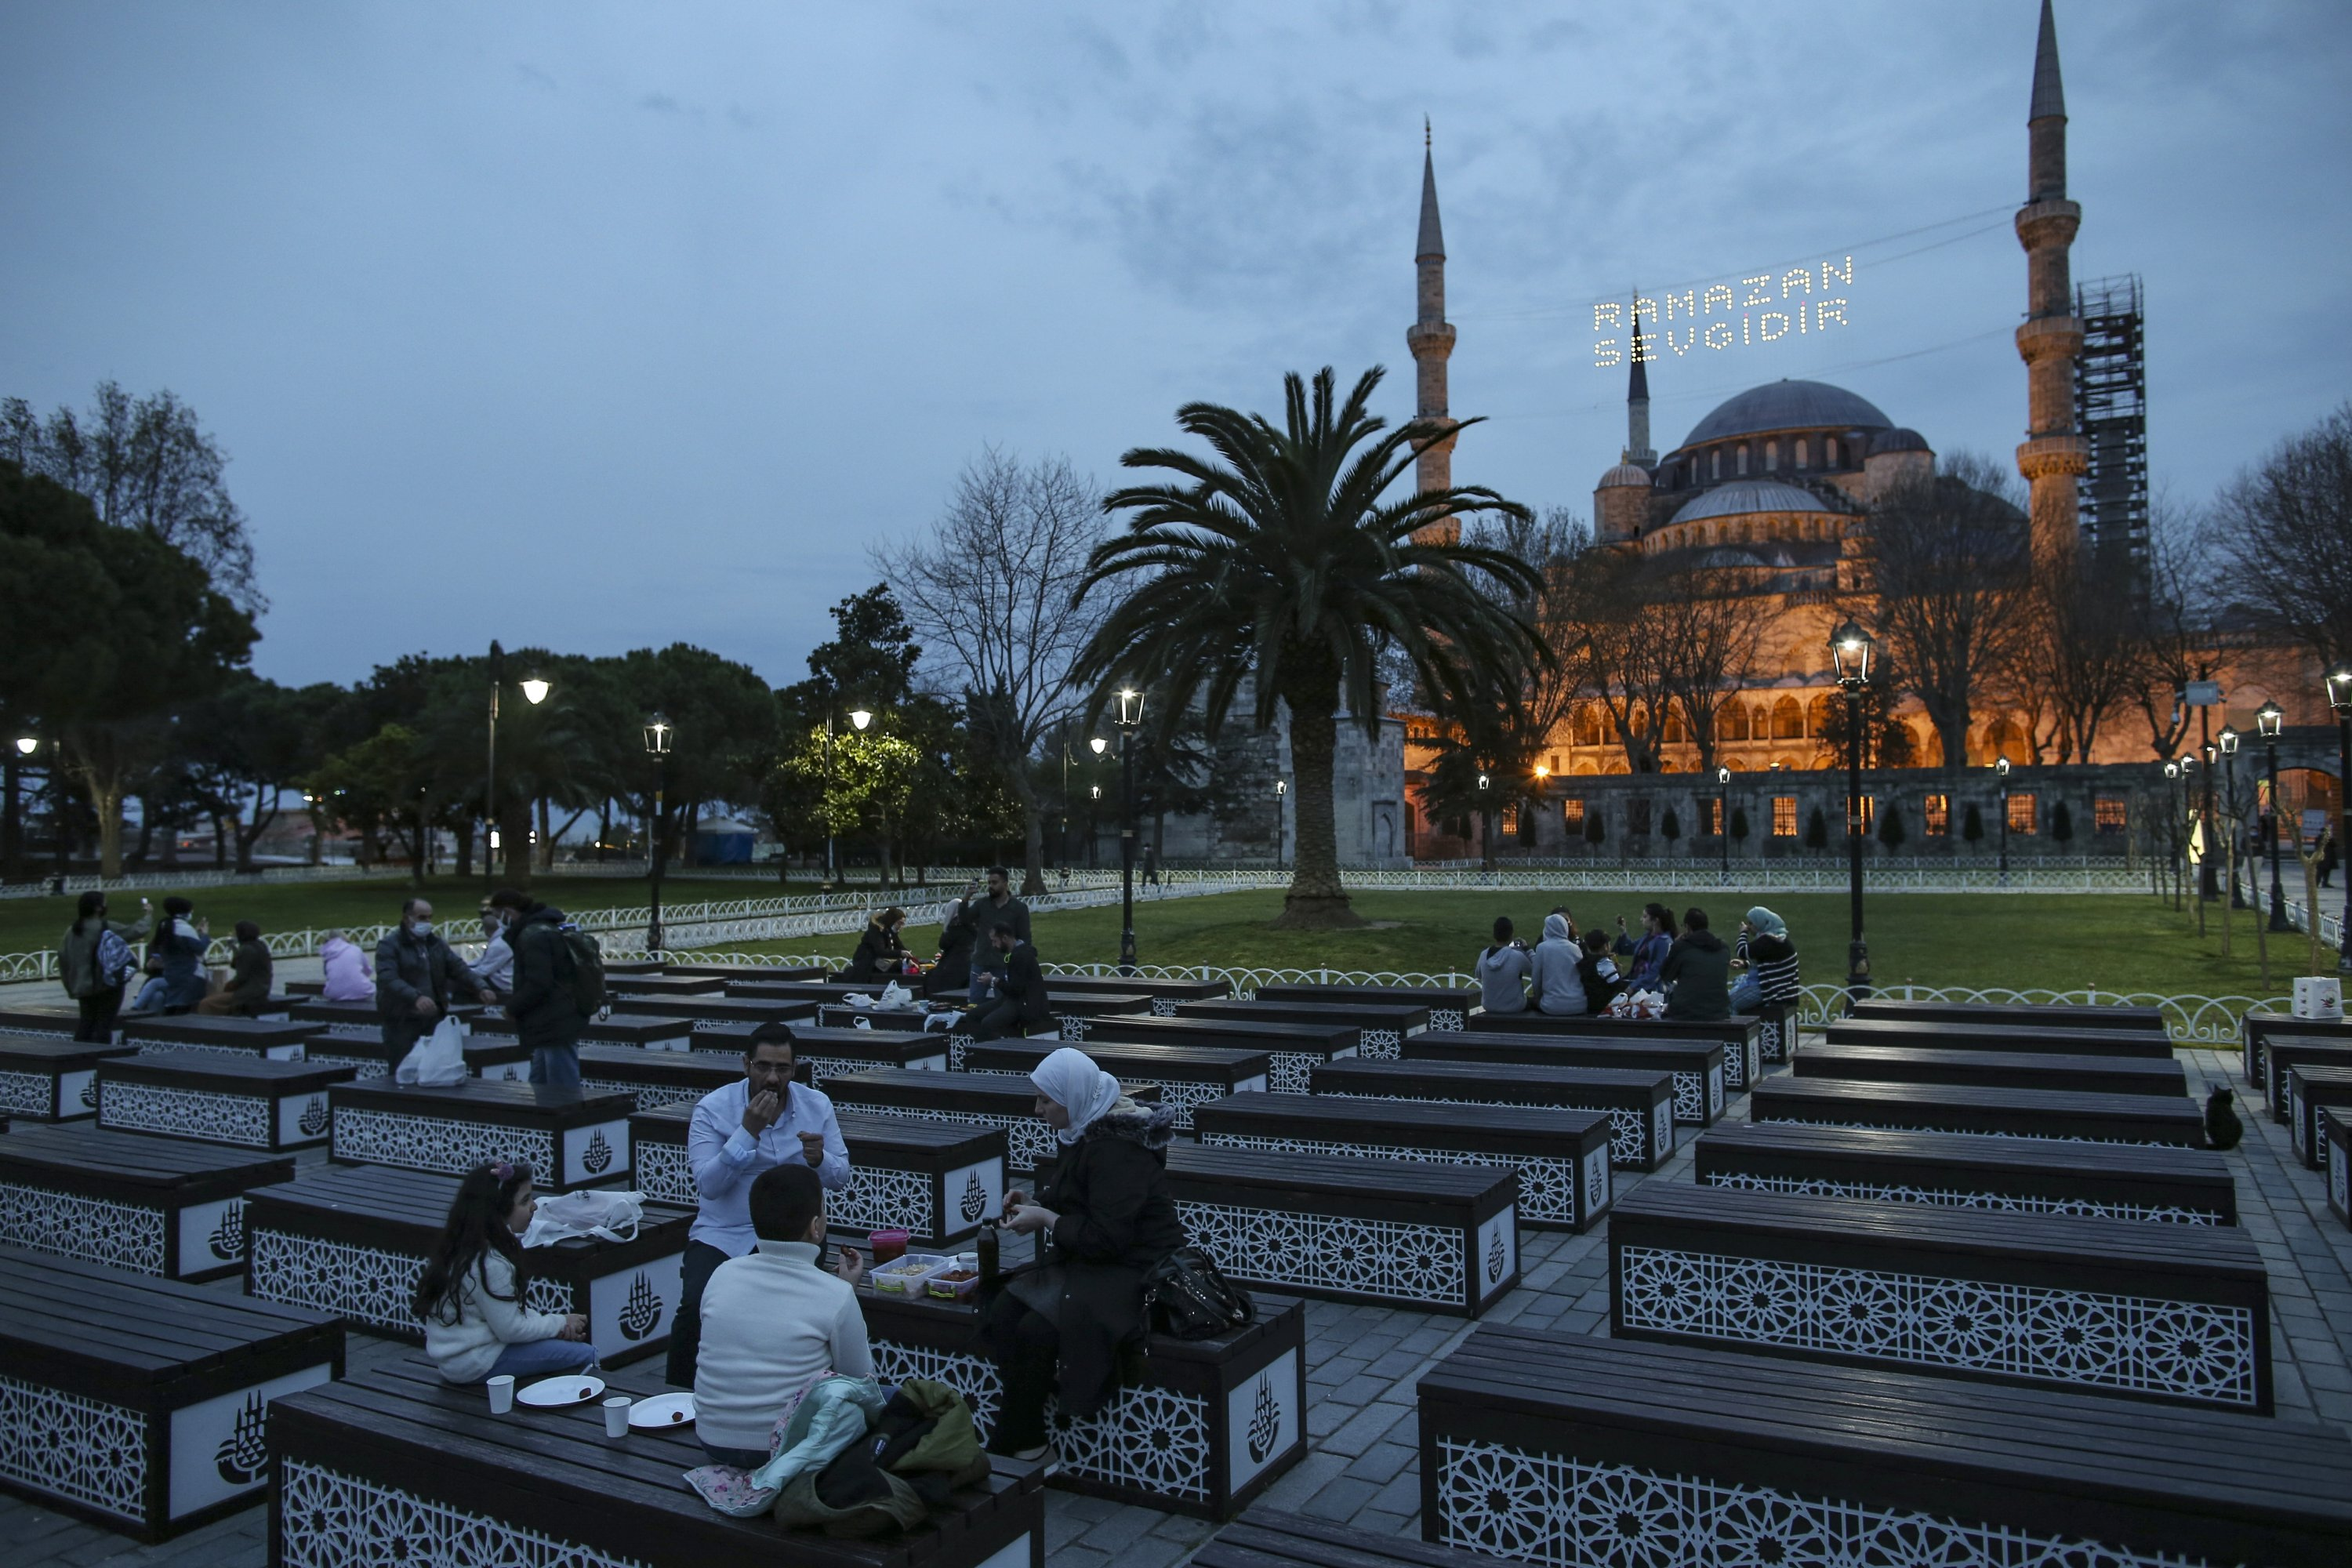 """People break their fast in front of the iconic Sultan Ahmed Mosque, or the Blue Mosque, decorated with lights reading """"Ramadan is love,"""" marking the holy month of Ramadan, in Istanbul, Turkey, April 13, 2021. (AP Photo)"""